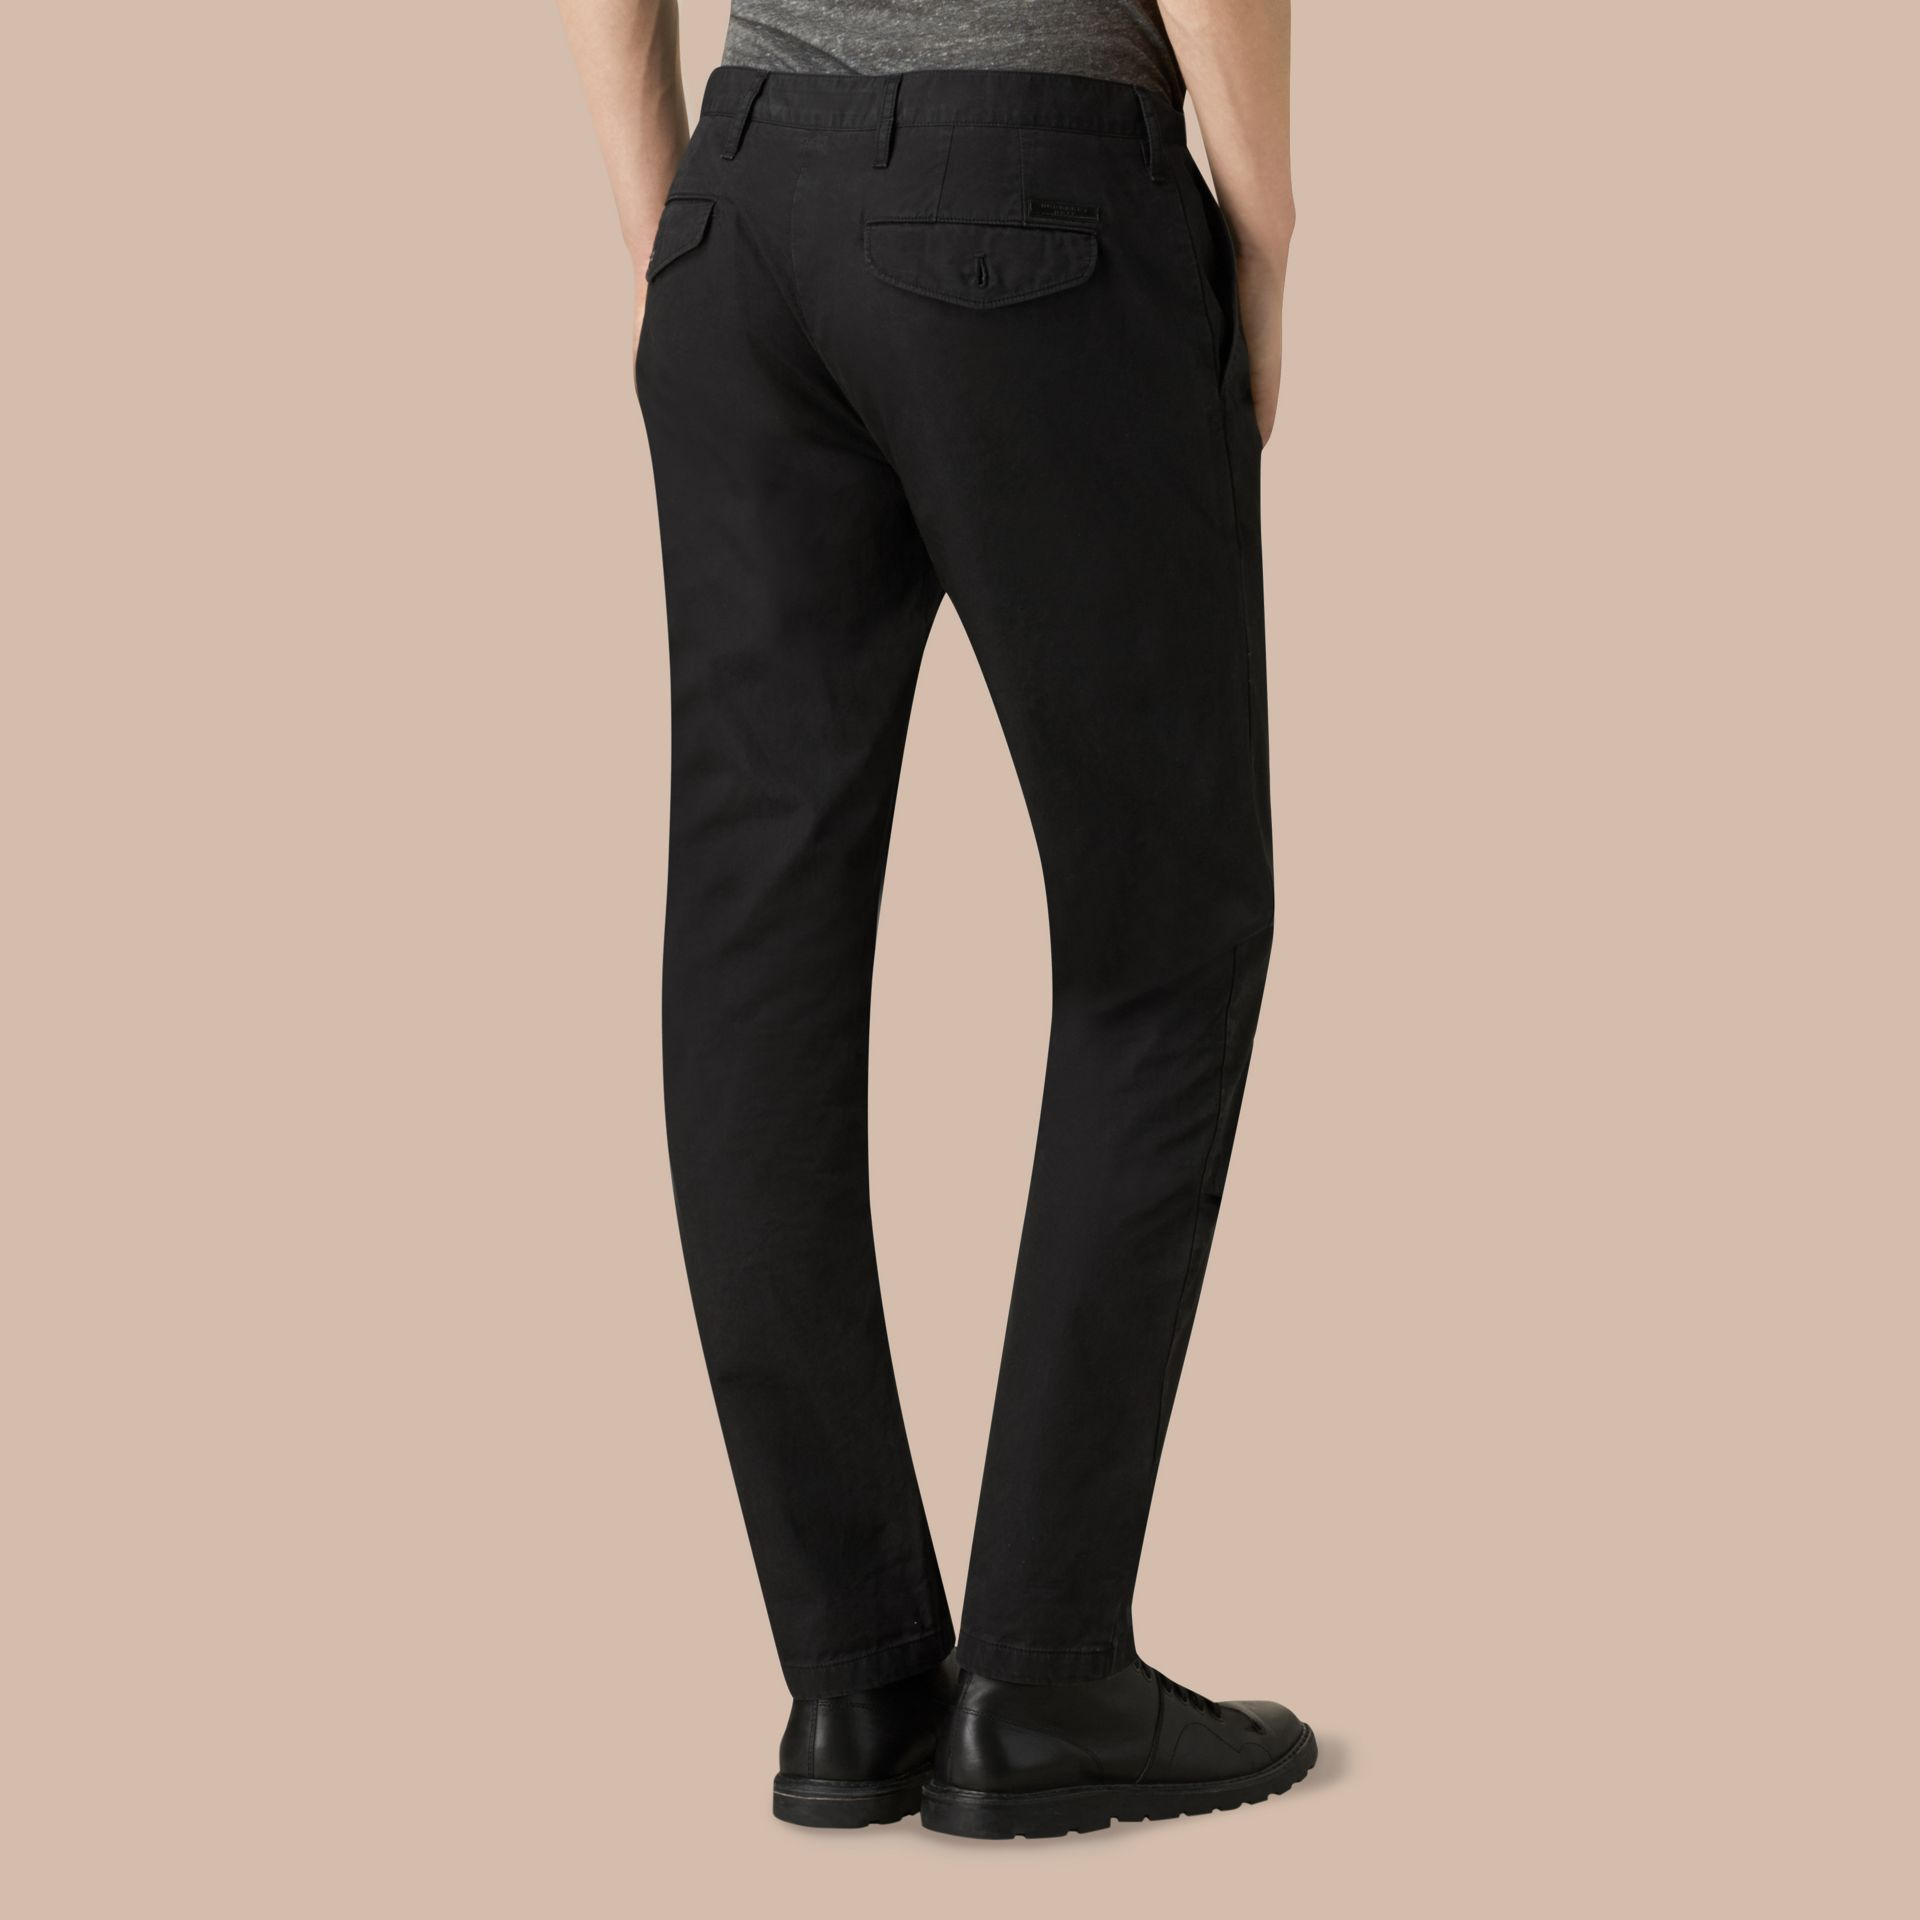 Black Slim Fit Cotton Chinos Black - gallery image 4